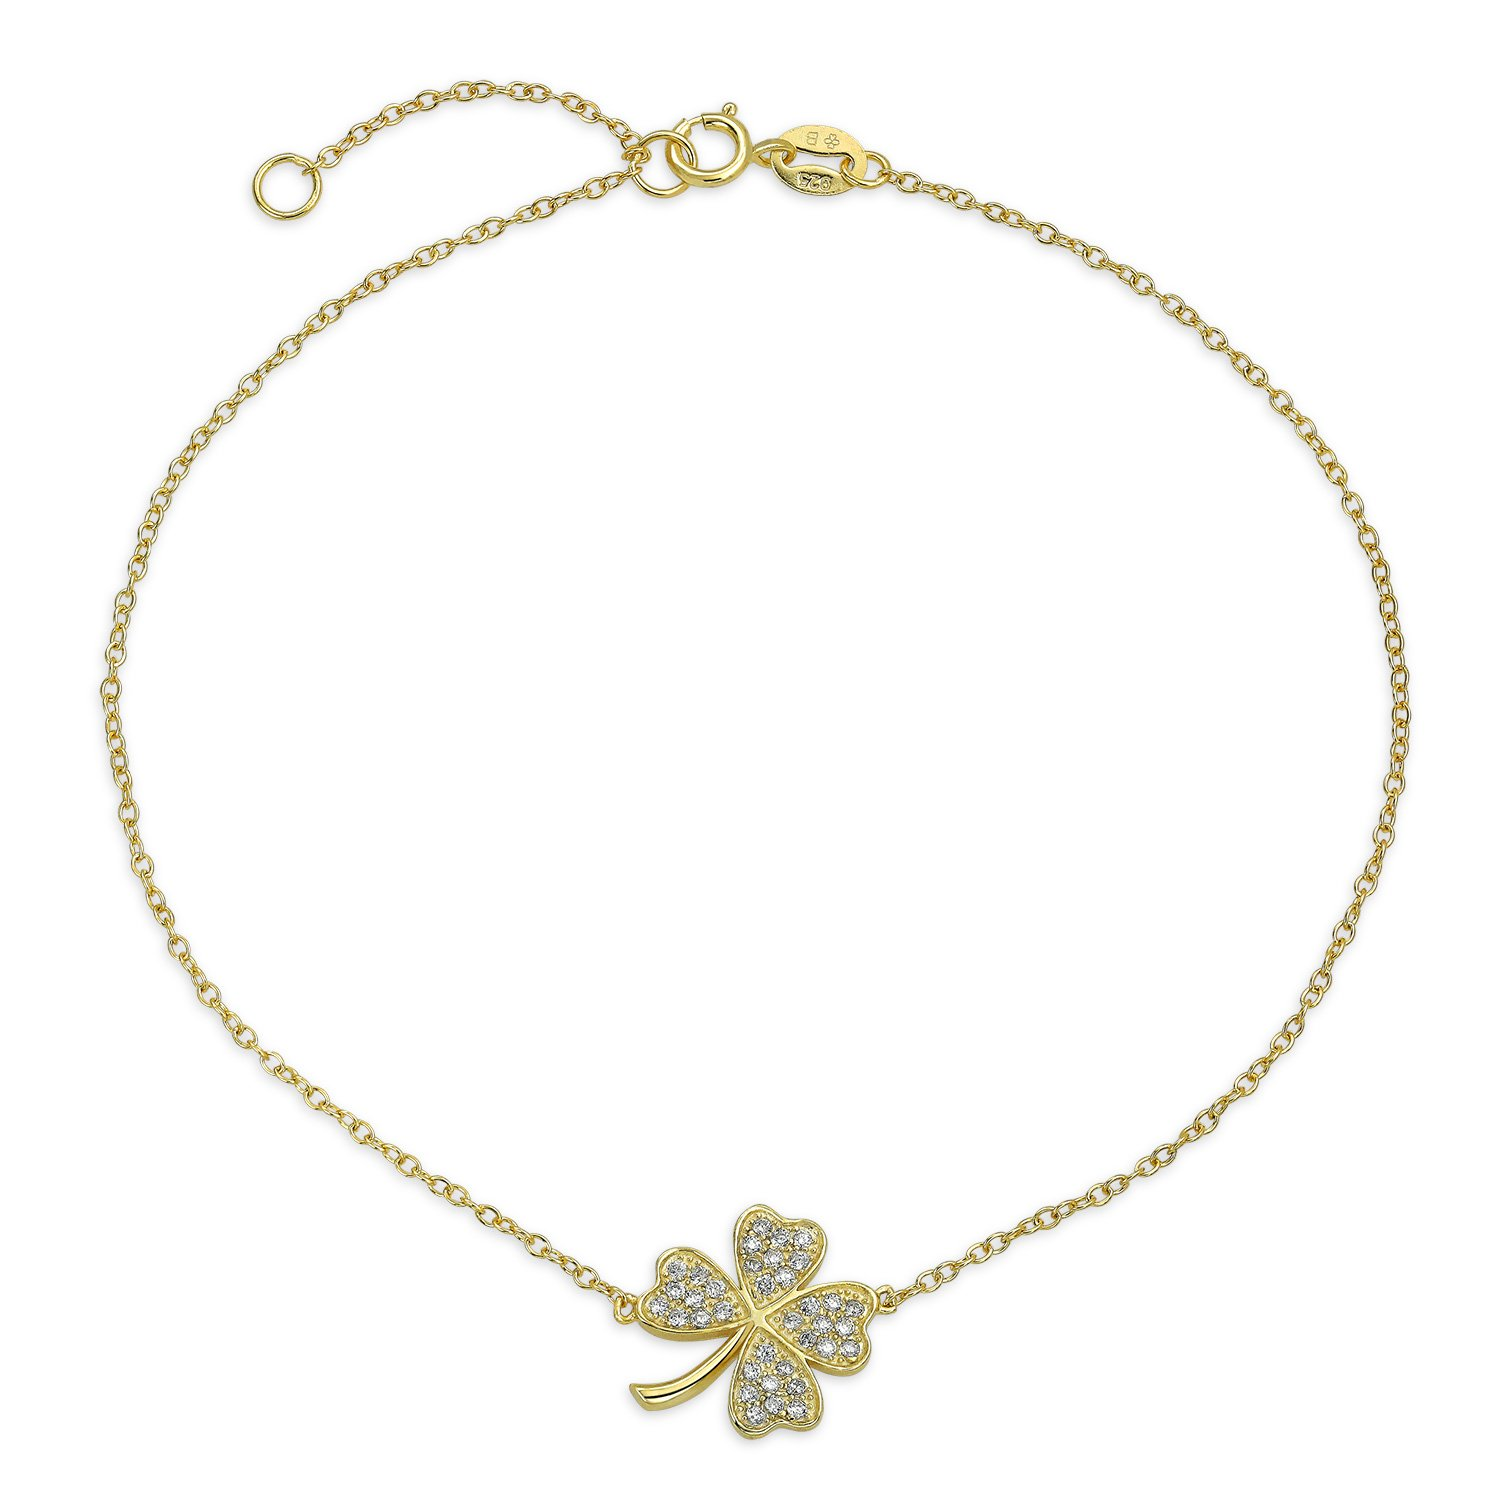 Bling Jewelry Gold Plated 925 Silver CZ Clover Shamrock Ankle Bracelet 9in PFS-54-0521G